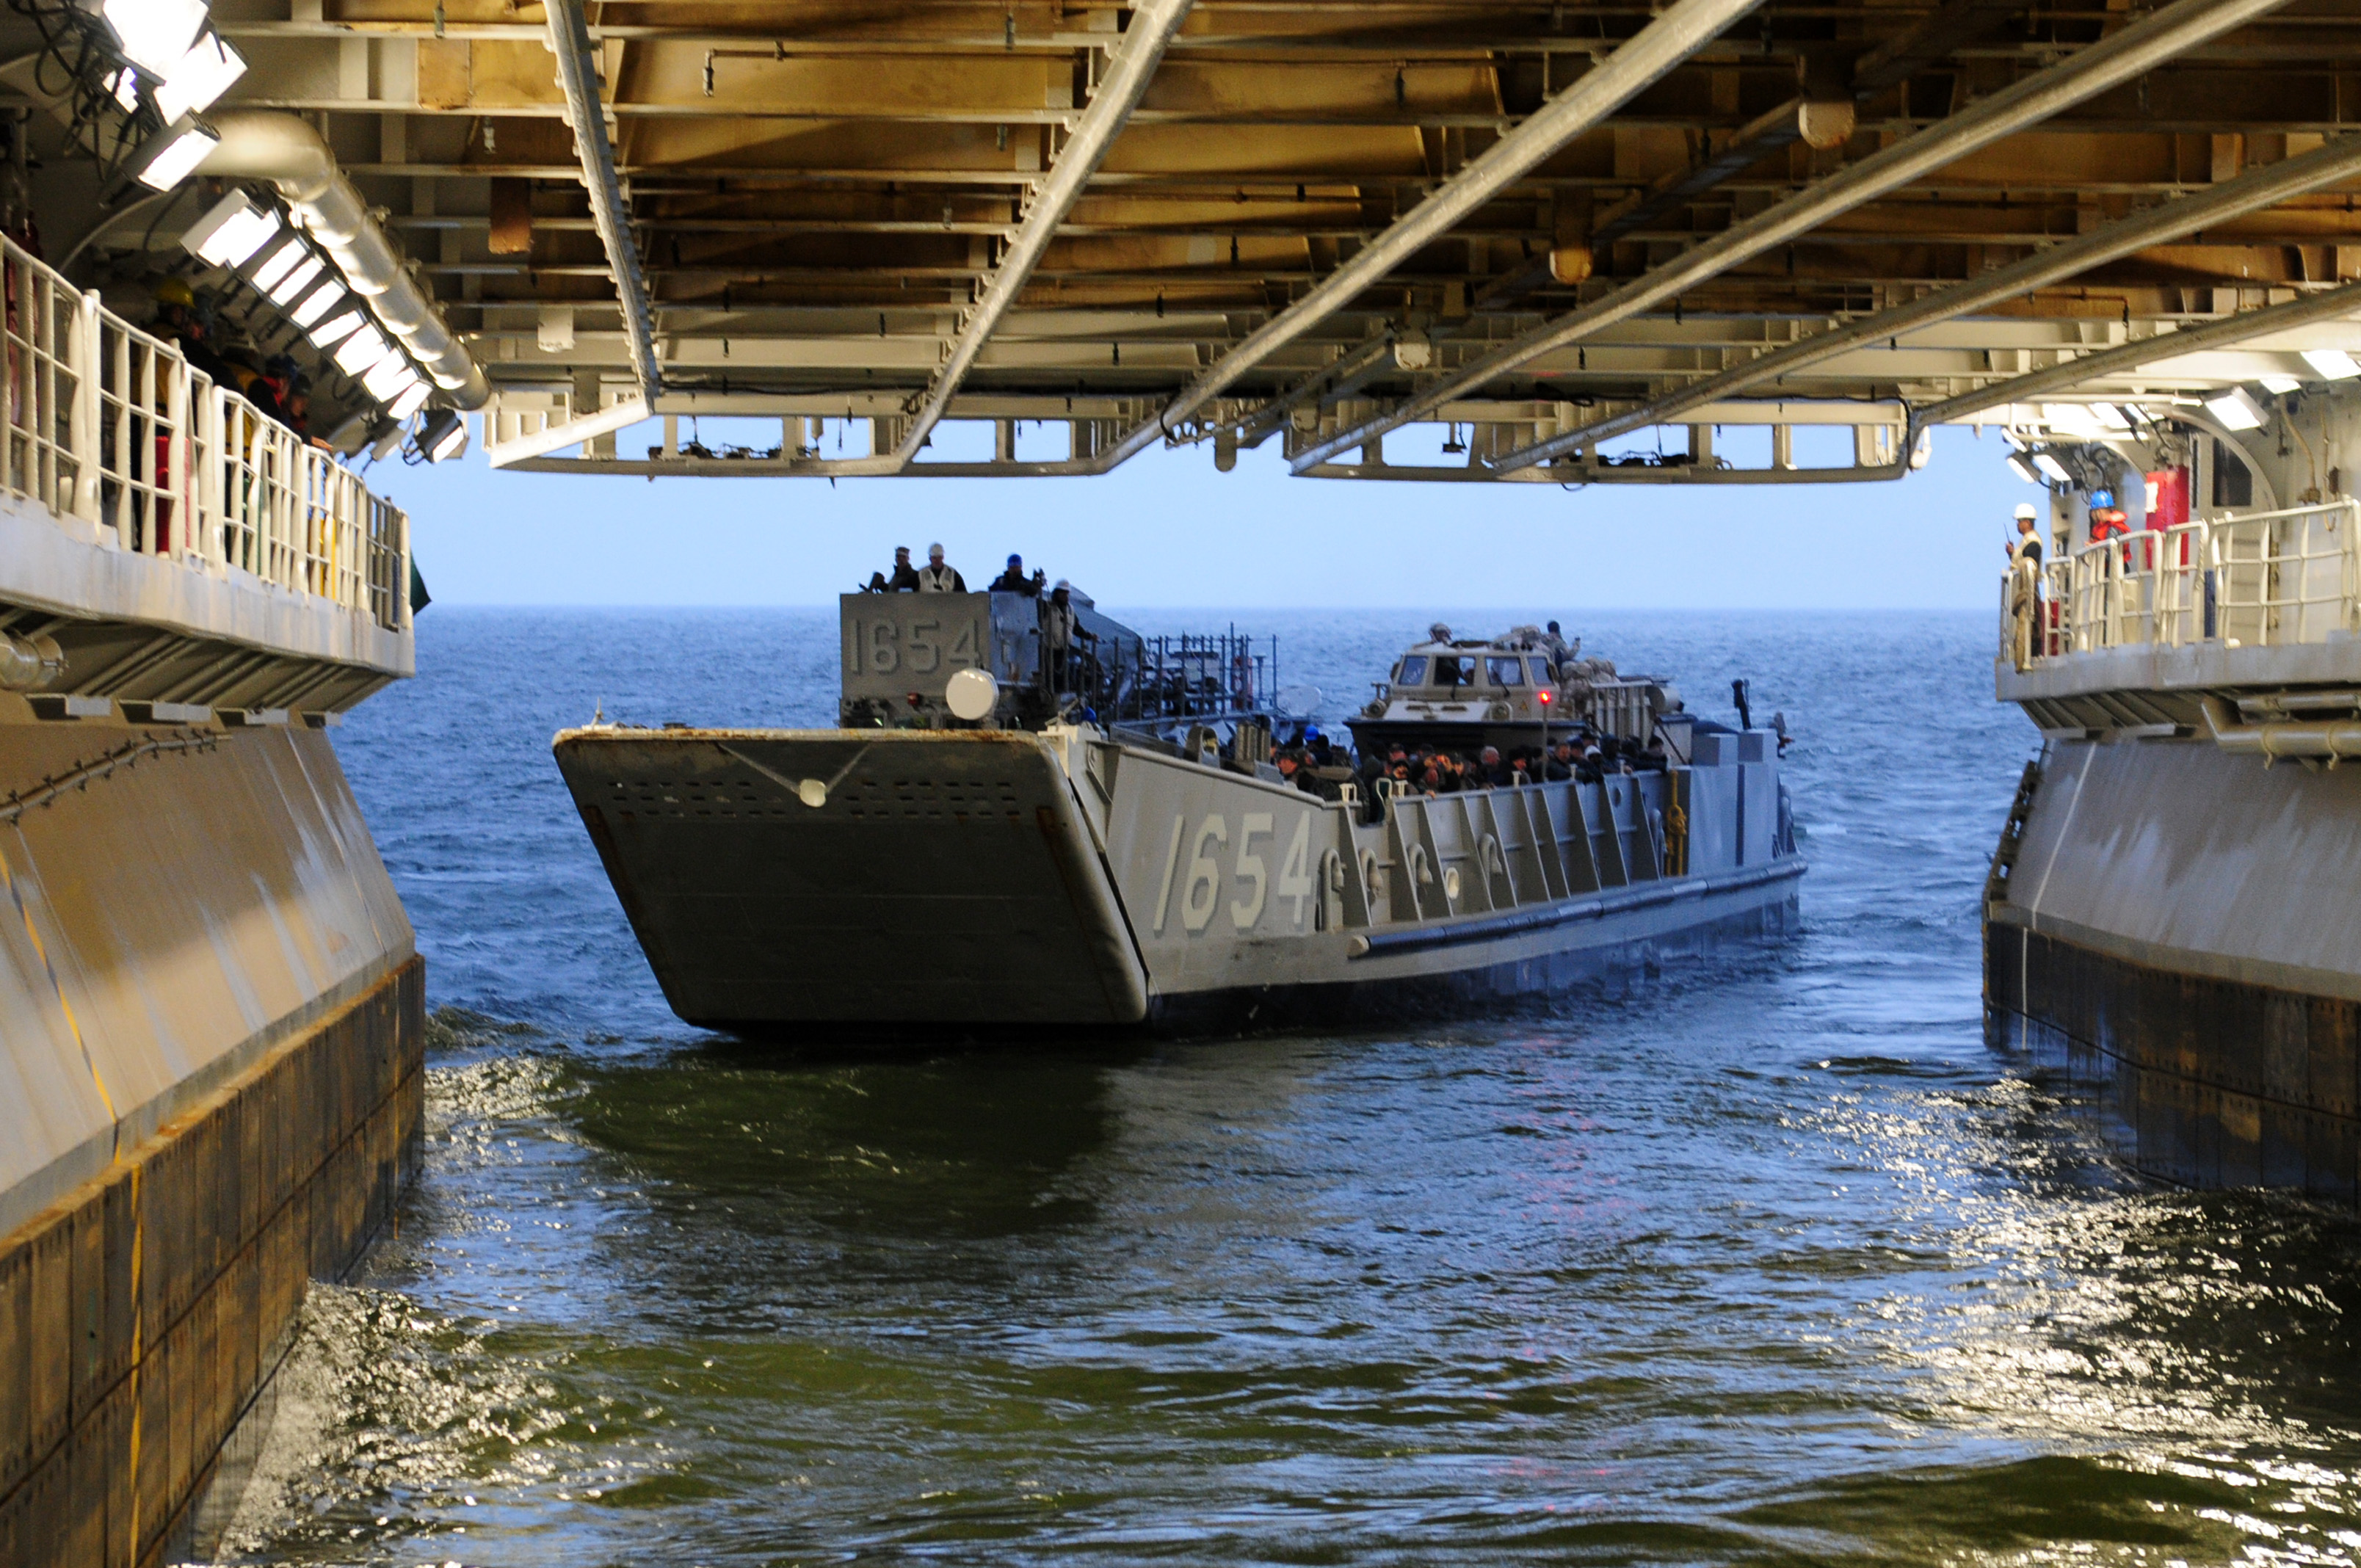 Count to 10,000 Using Pictures - Page 16 US_Navy_120109-N-GF386-064_Landing_Craft_Utility_%28LCU%29_1654%2C_assigned_to_Assault_Craft_Unit_2%2C_departs_the_well_deck_of_the_amphibious_assault_ship